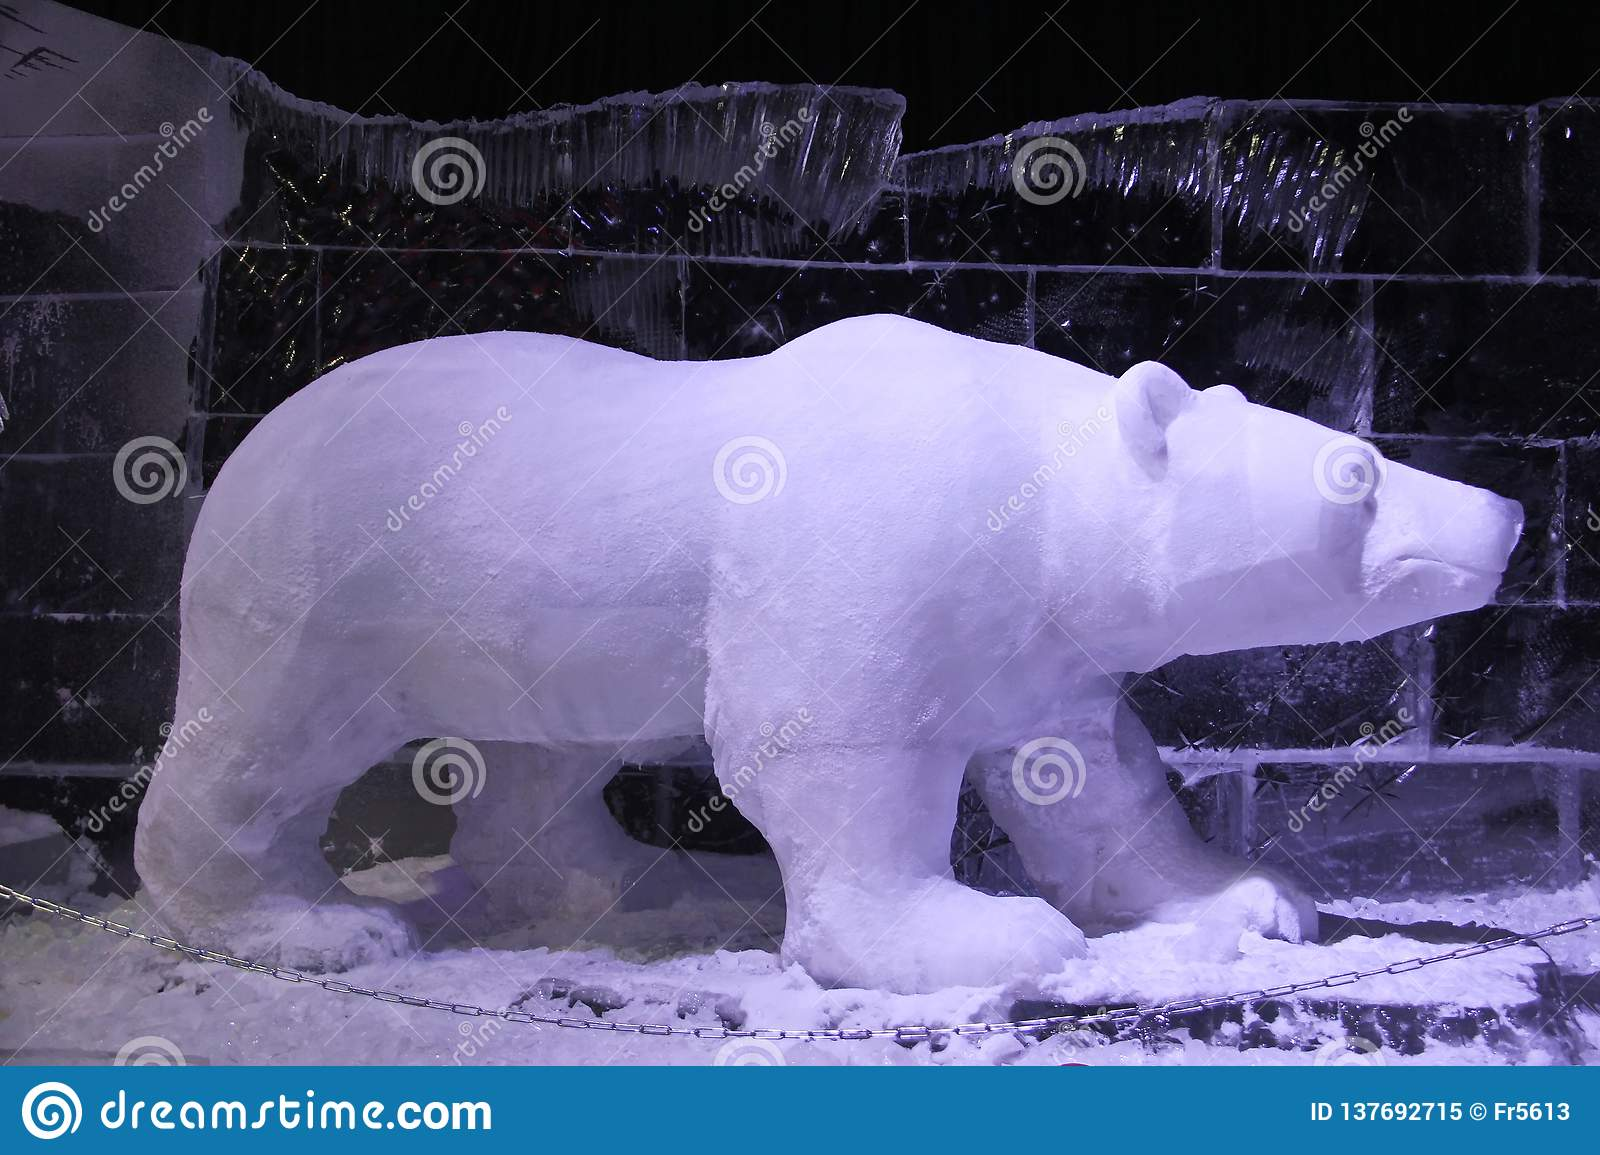 Polar bear made of ice and snow